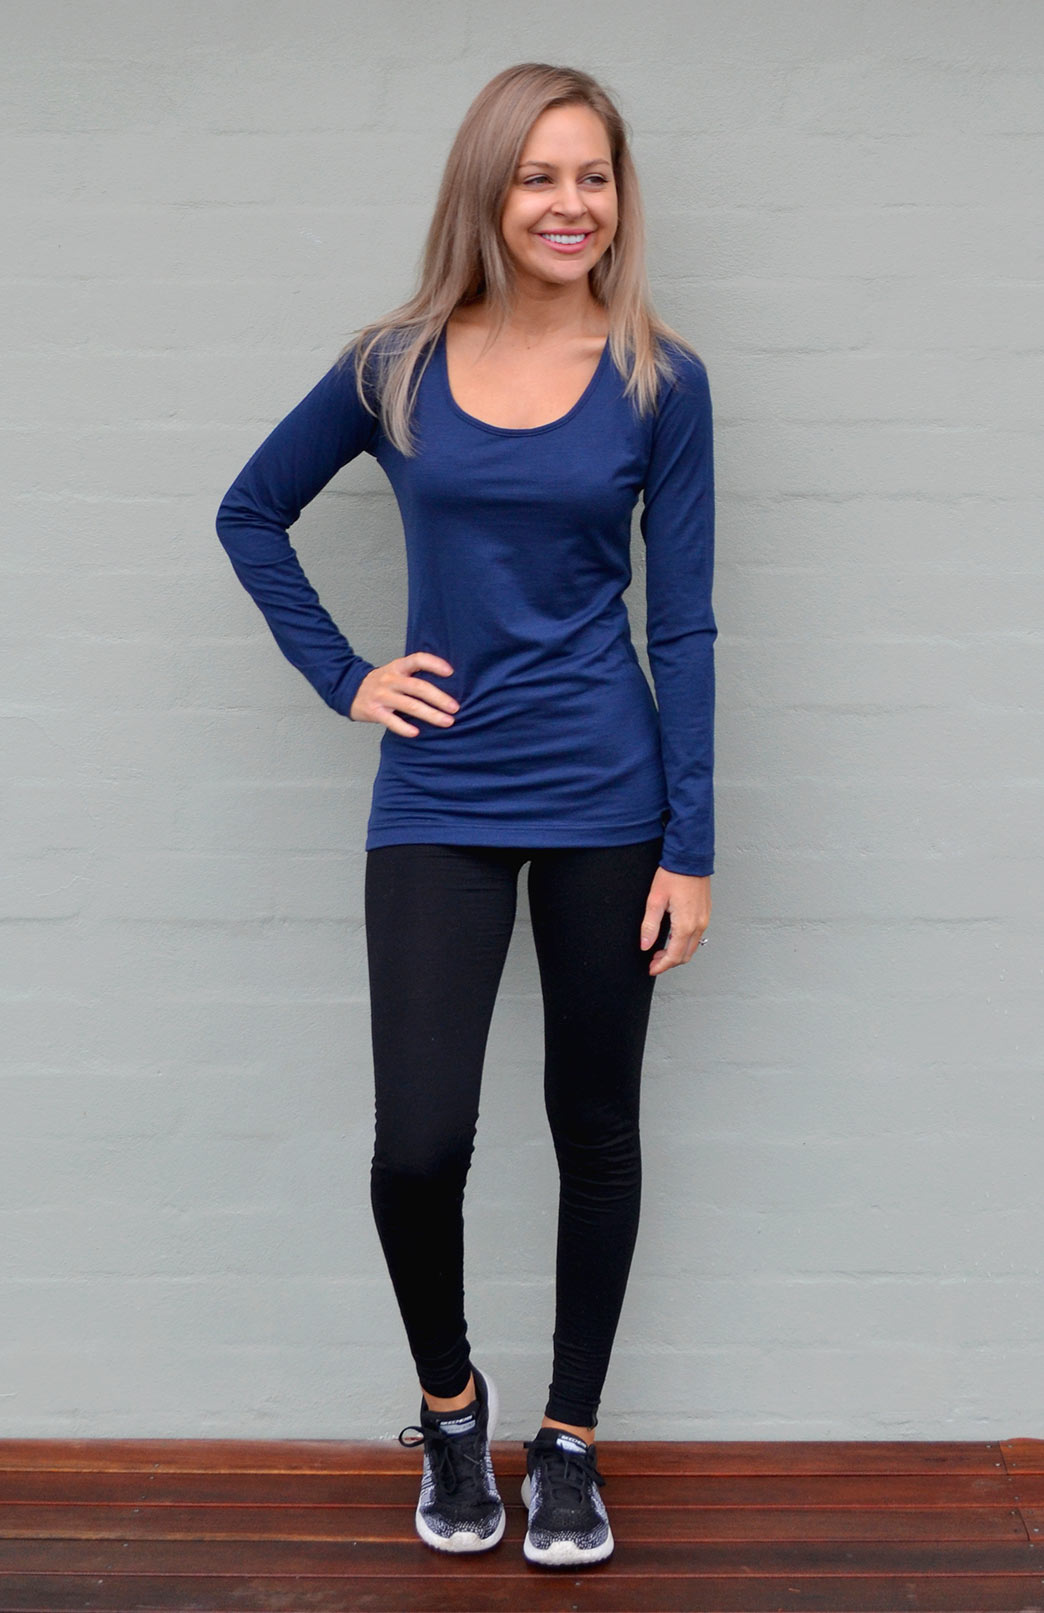 Scoop Neck Top - Plain - Women's Stone Pure Merino Wool Long Sleeved Layering Top with Scoop Neckline - Smitten Merino Tasmania Australia